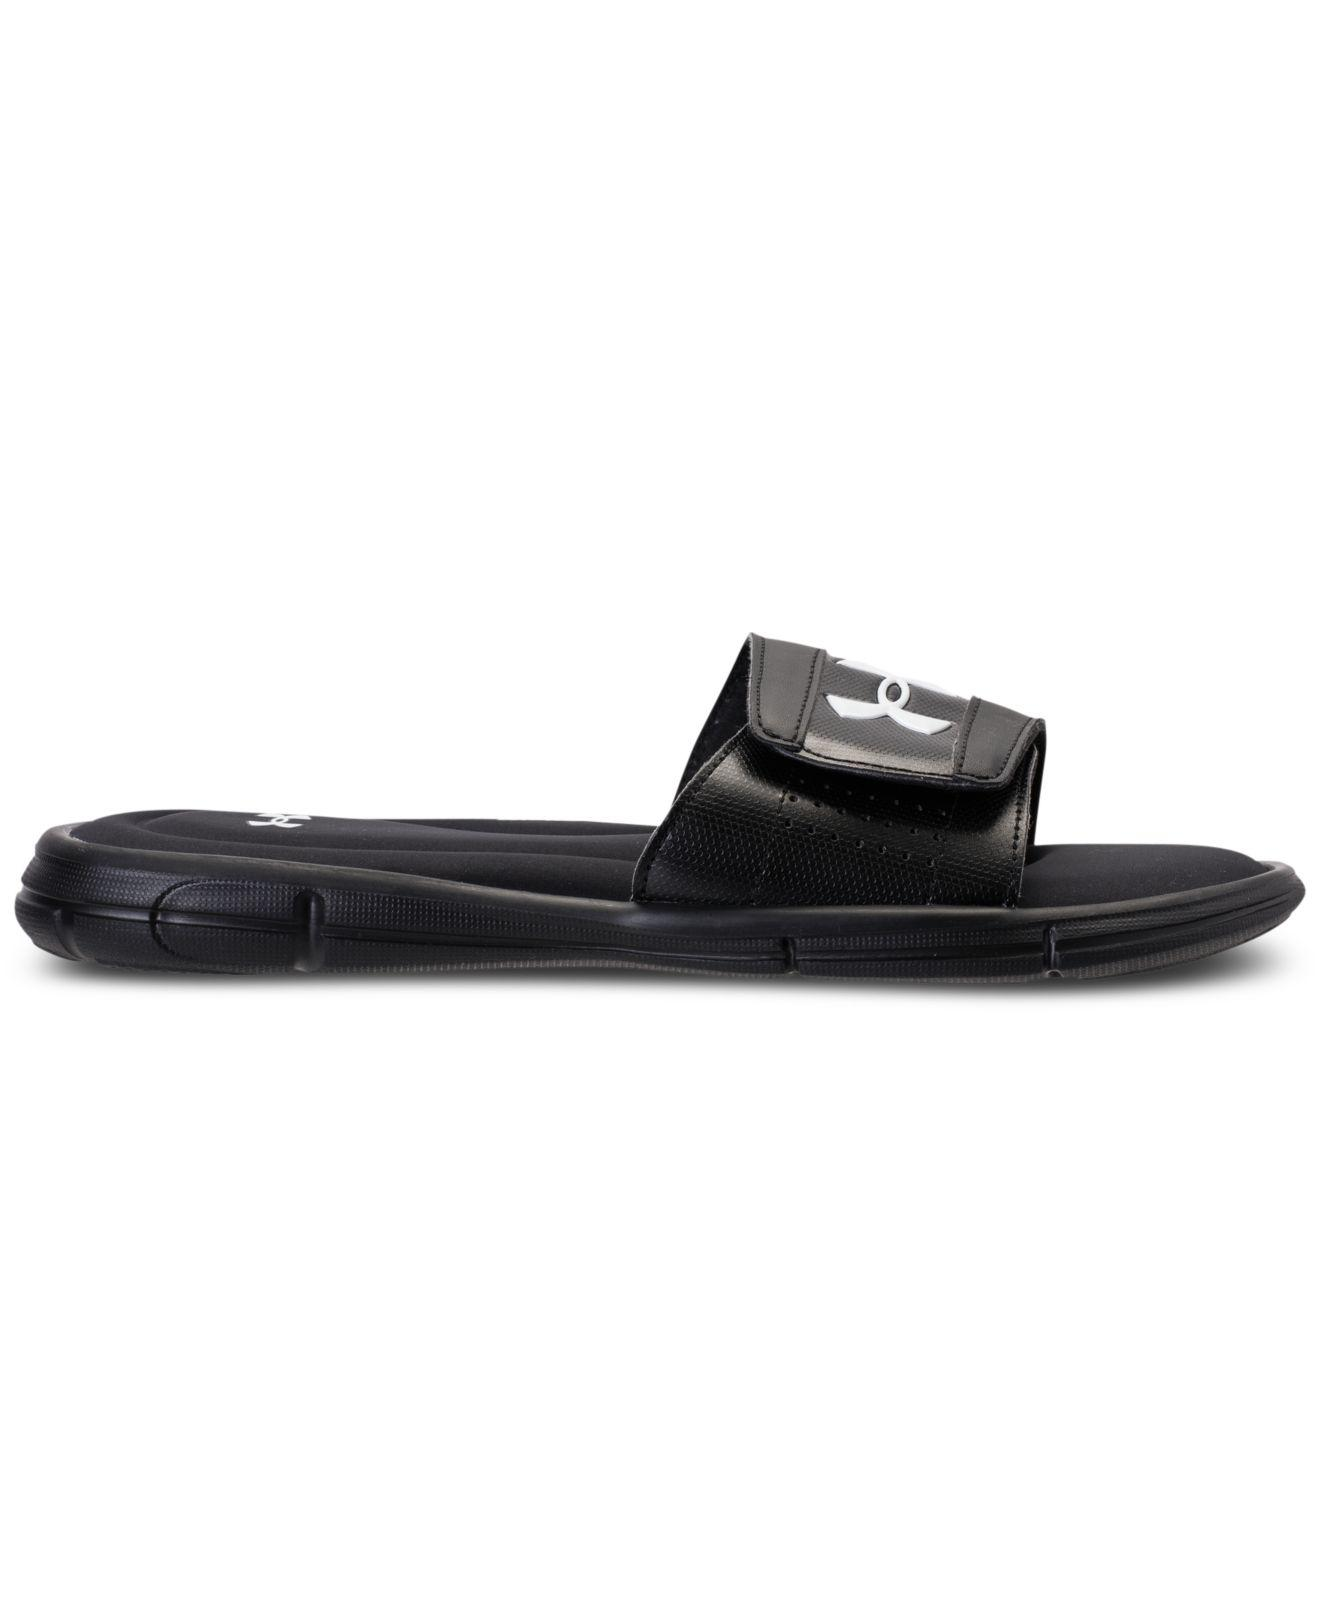 fafd0d4c20f Lyst - Under Armour Ignite V Slide Sandals From Finish Line in Black for Men  - Save 15%